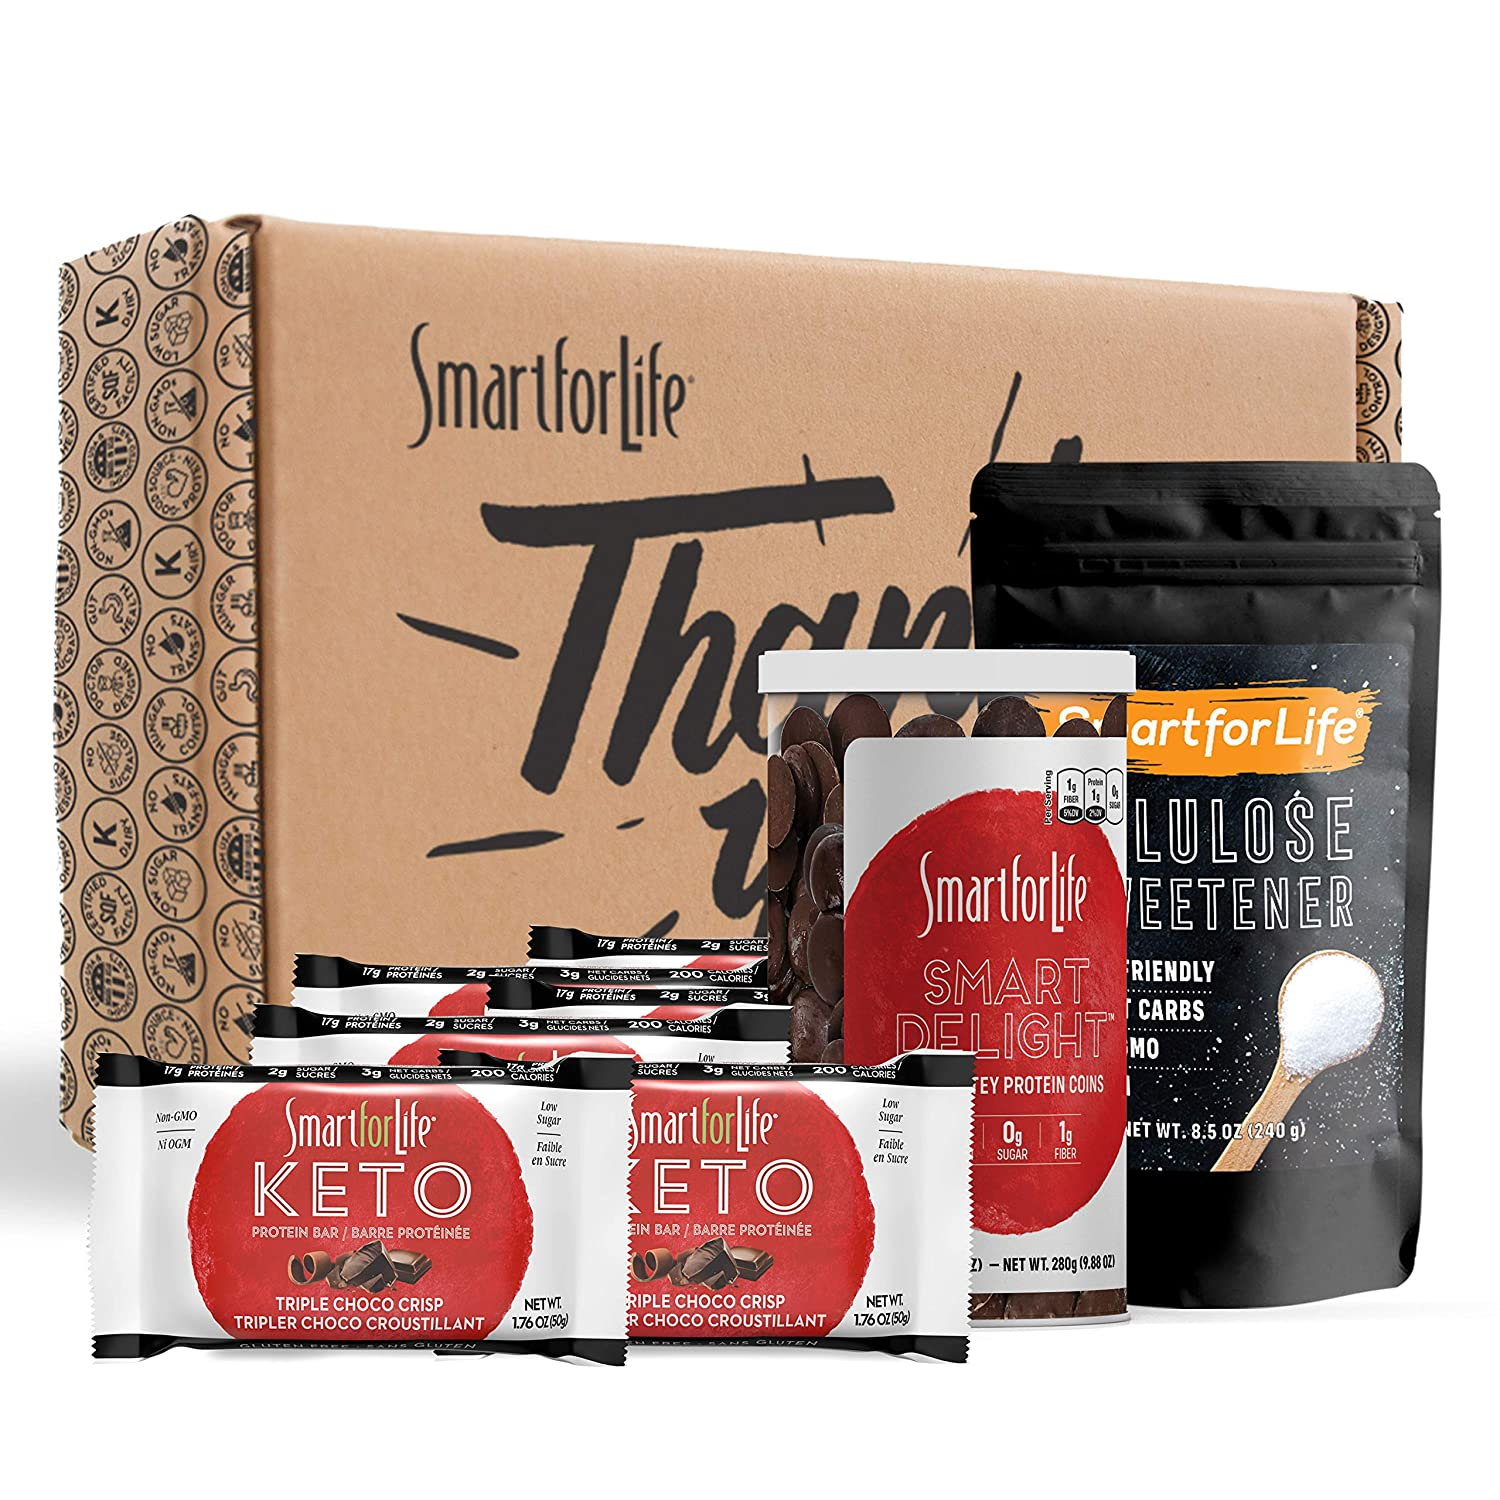 Smart for Life Keto Snack Box Gift Set with Keto Food - Keto Bars for Meal Replacement, Allulose Keto Sweetener, and Keto Chocolate Coins - Perfect for Keto Diet